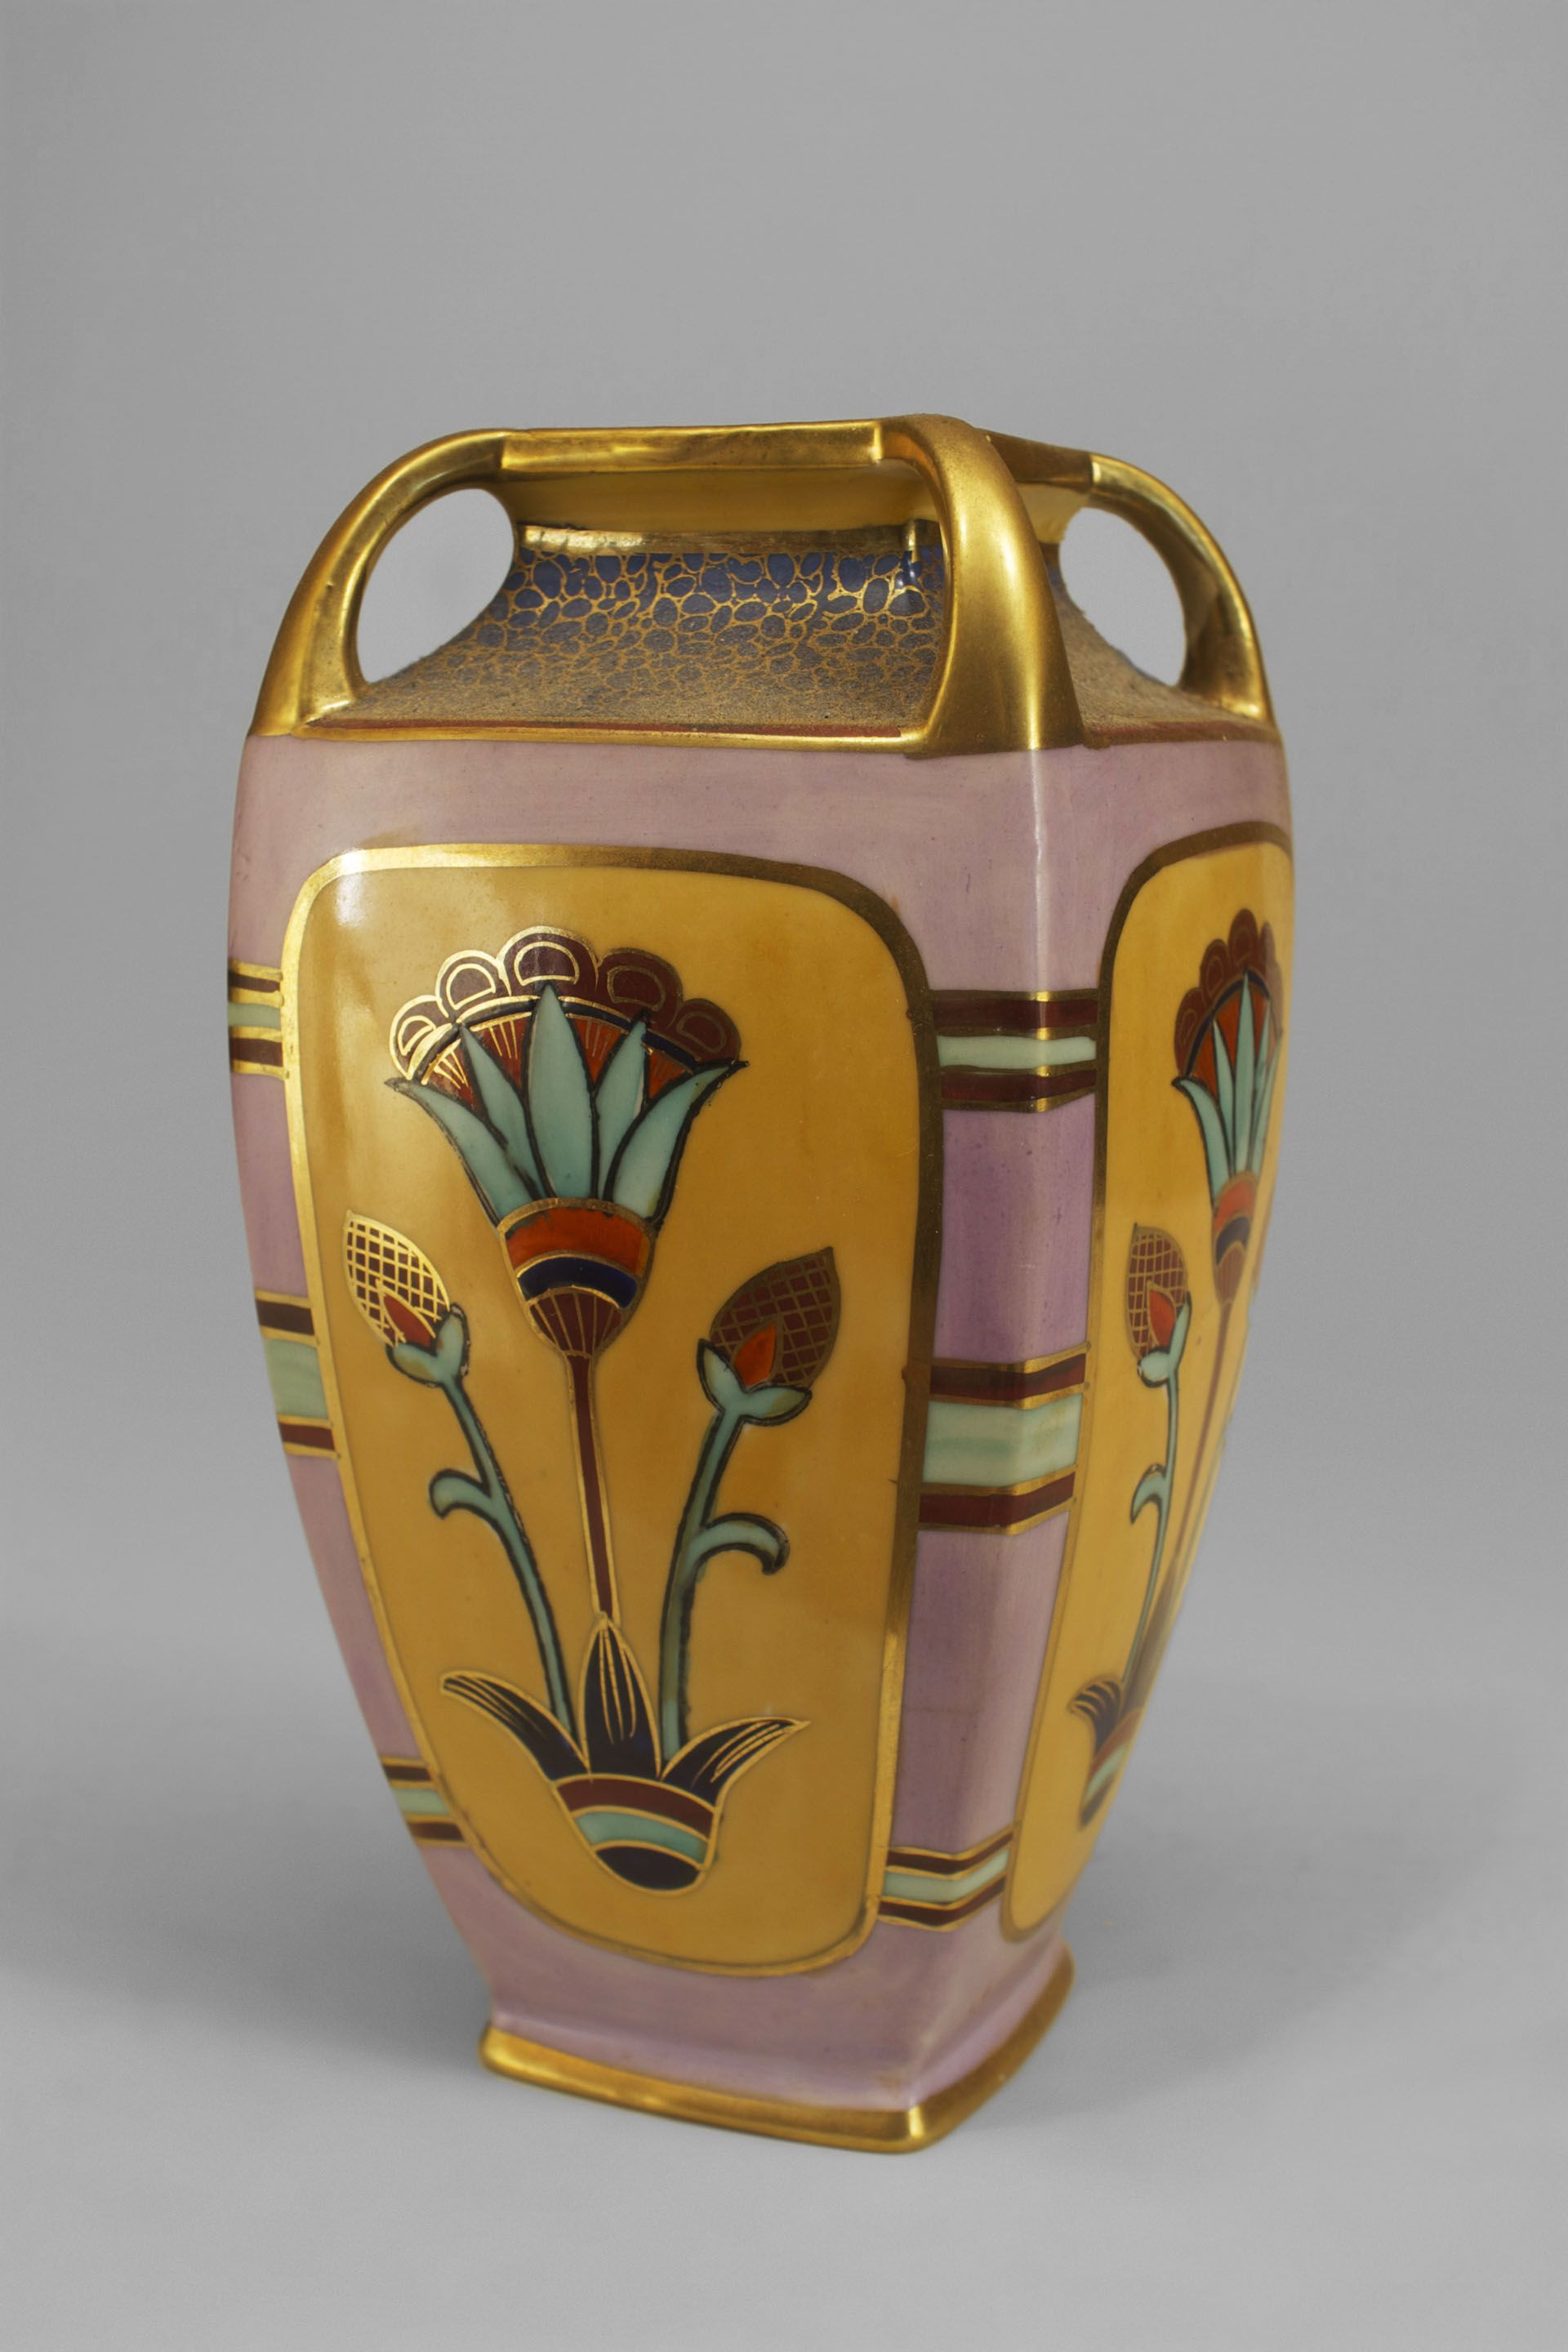 4 square glass vase of art deco pink beige and gilt trimmed square tapered vase with for art deco pink beige and gilt trimmed square tapered vase with egyptian floral motifs and 4 open handles at top signed noritake made in japan